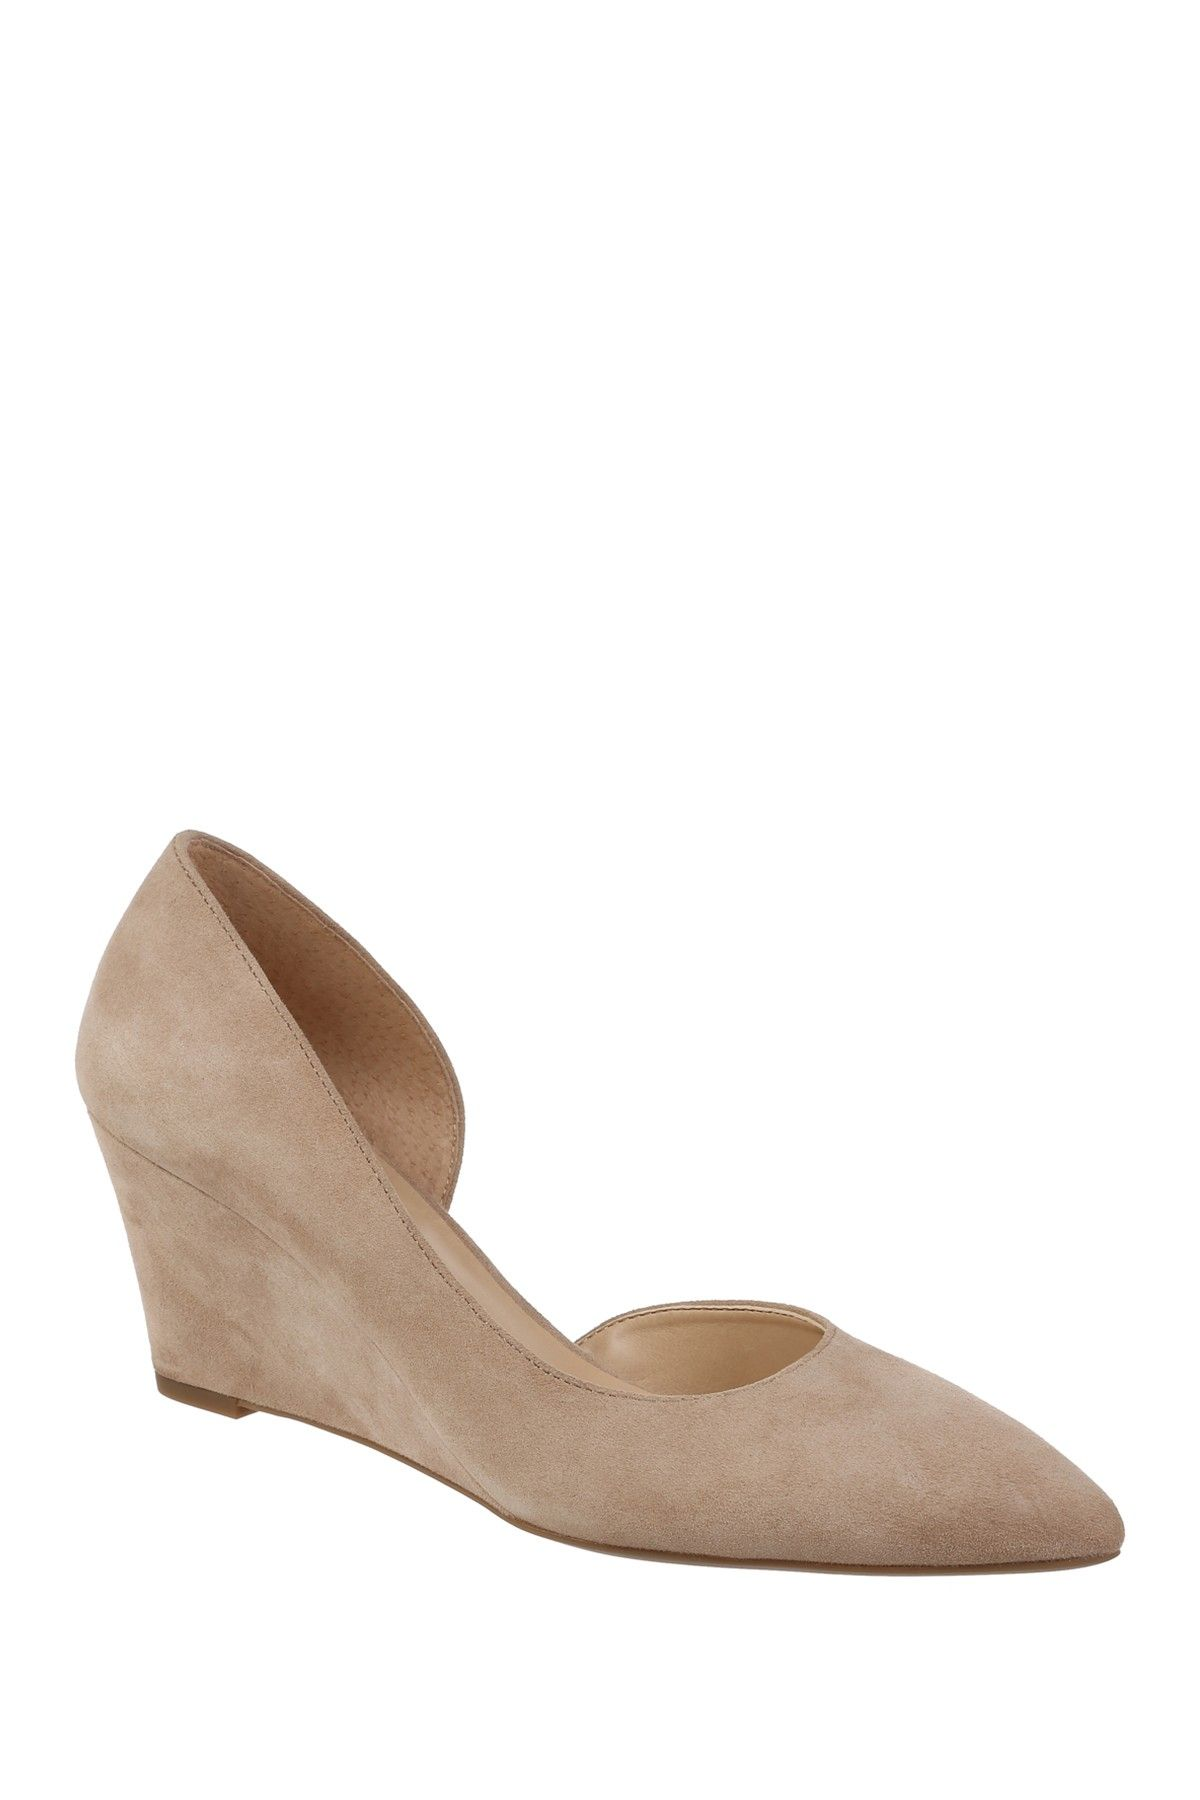 c98cb41bf Franco Sarto - Felice d'Orsay Wedge Pump. Free Shipping on orders over $100.